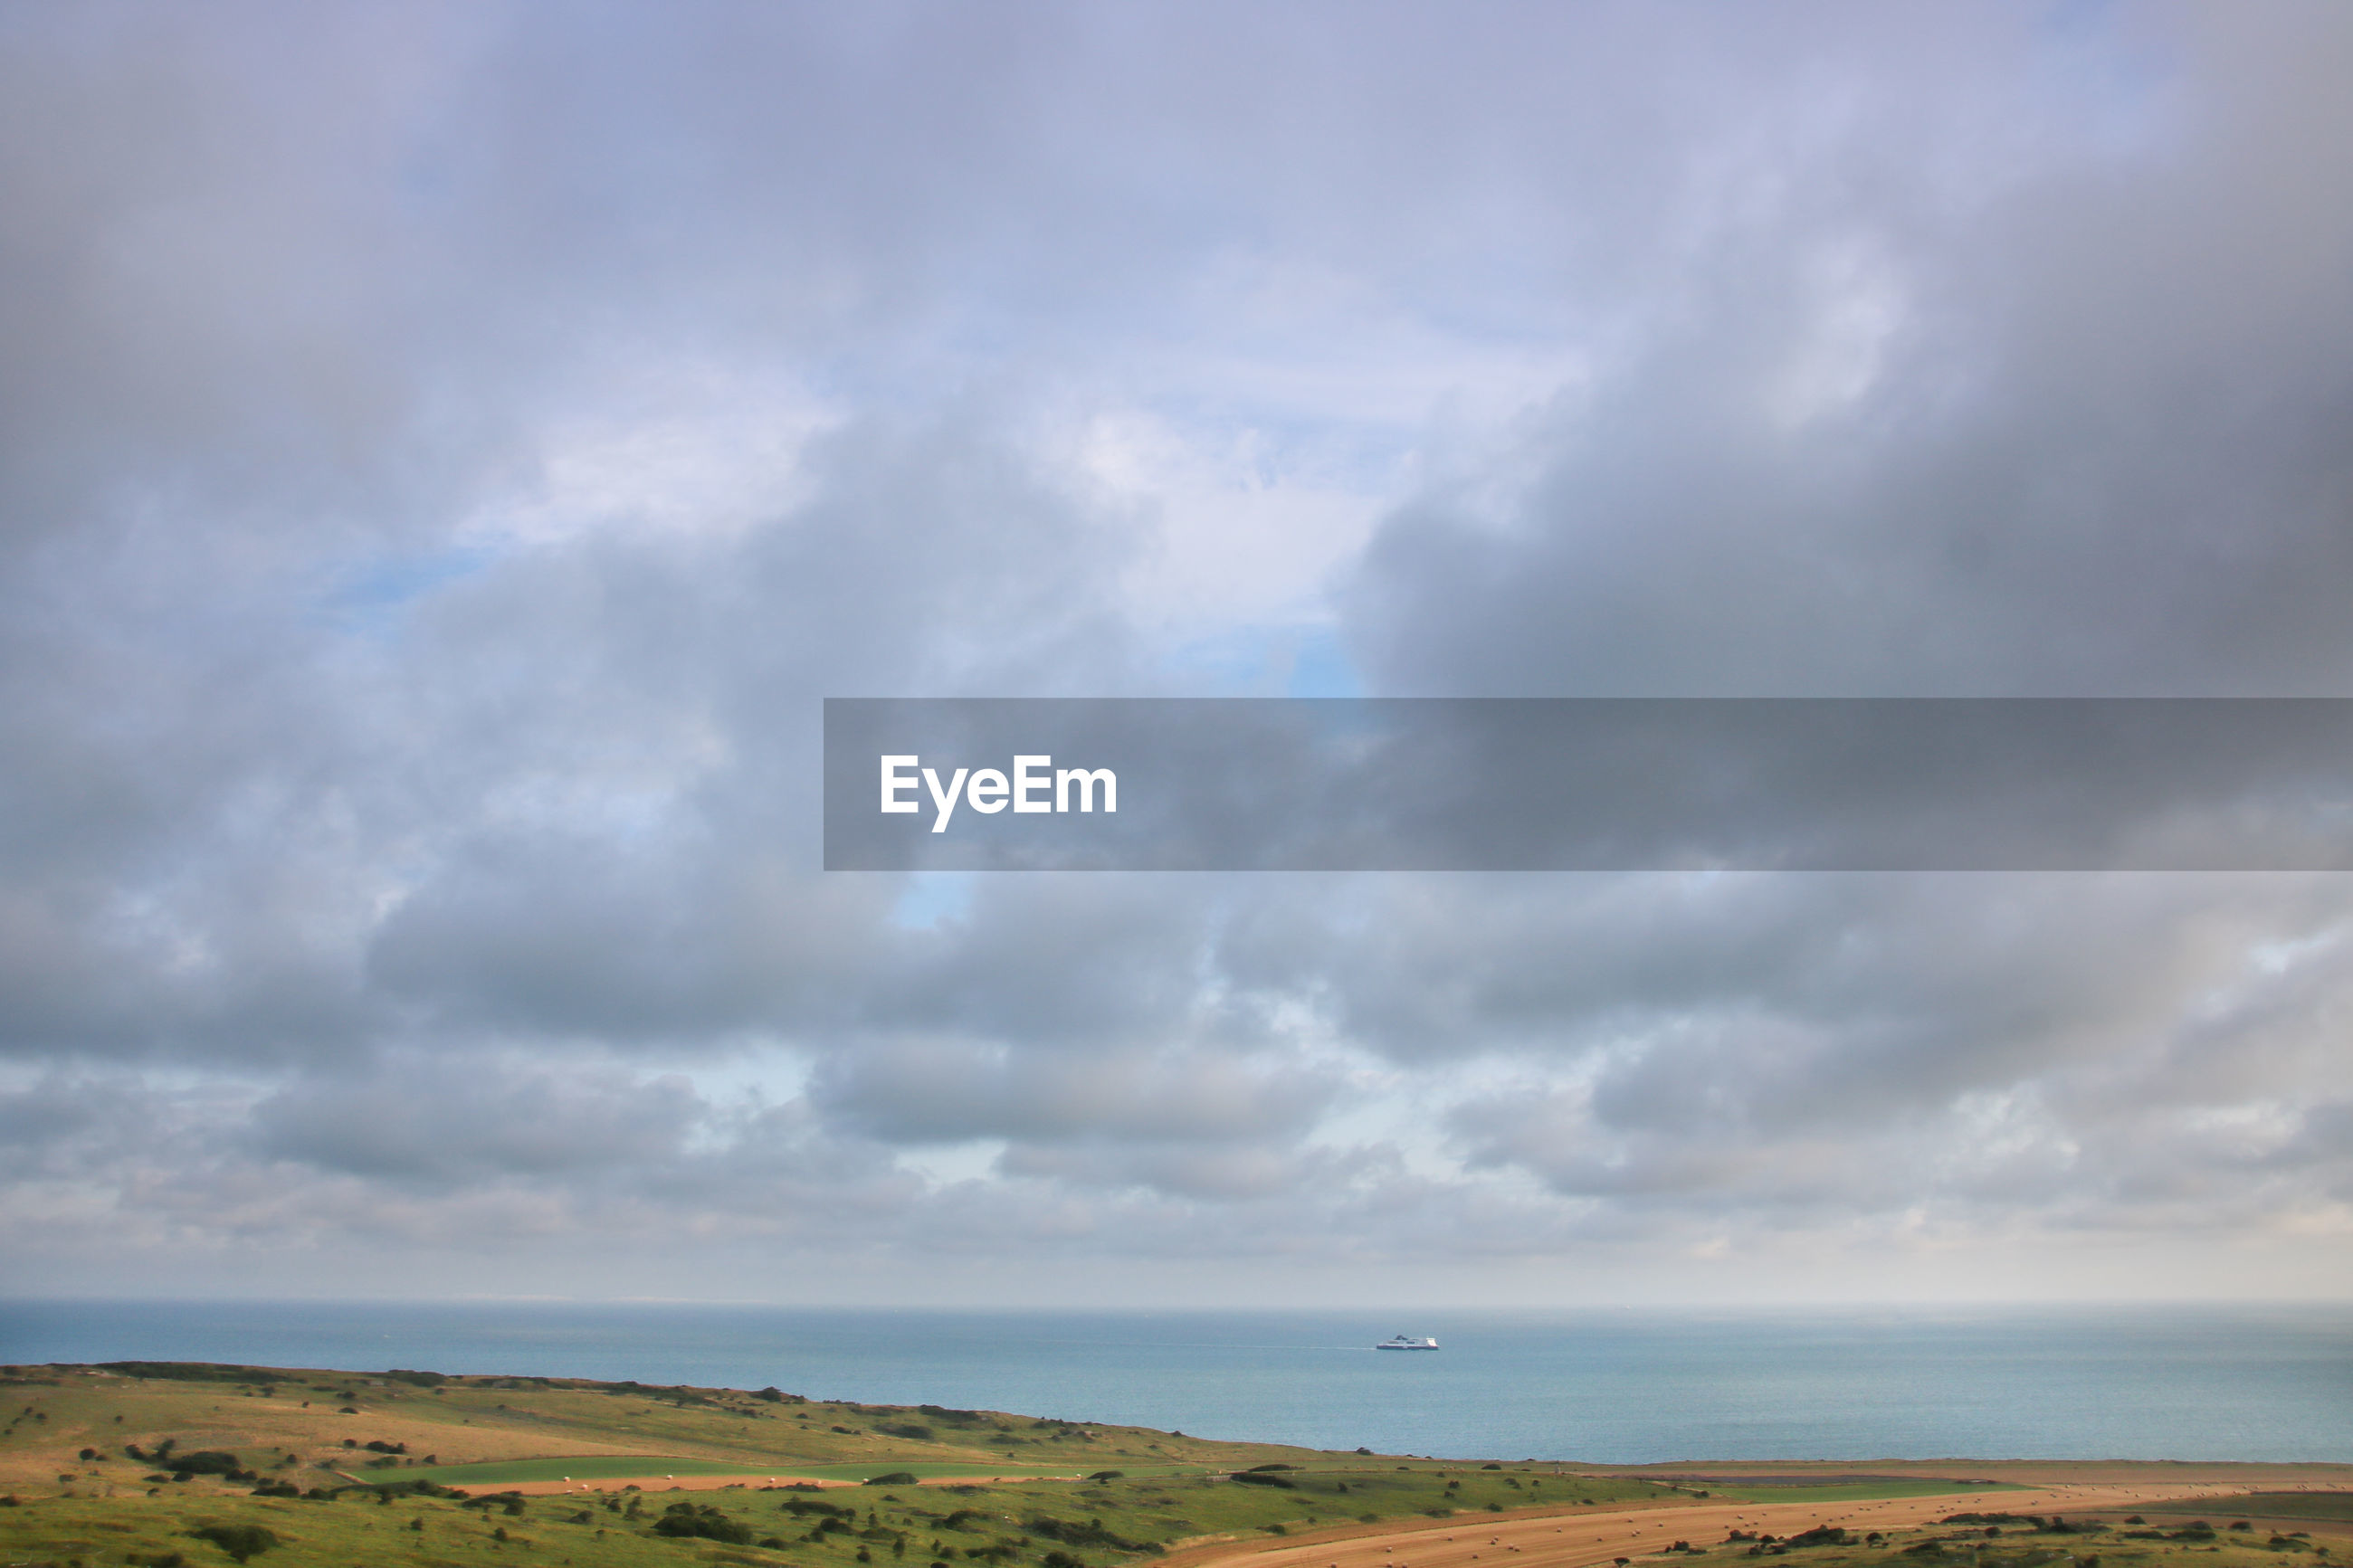 SCENIC VIEW OF LAND AND SEA AGAINST SKY